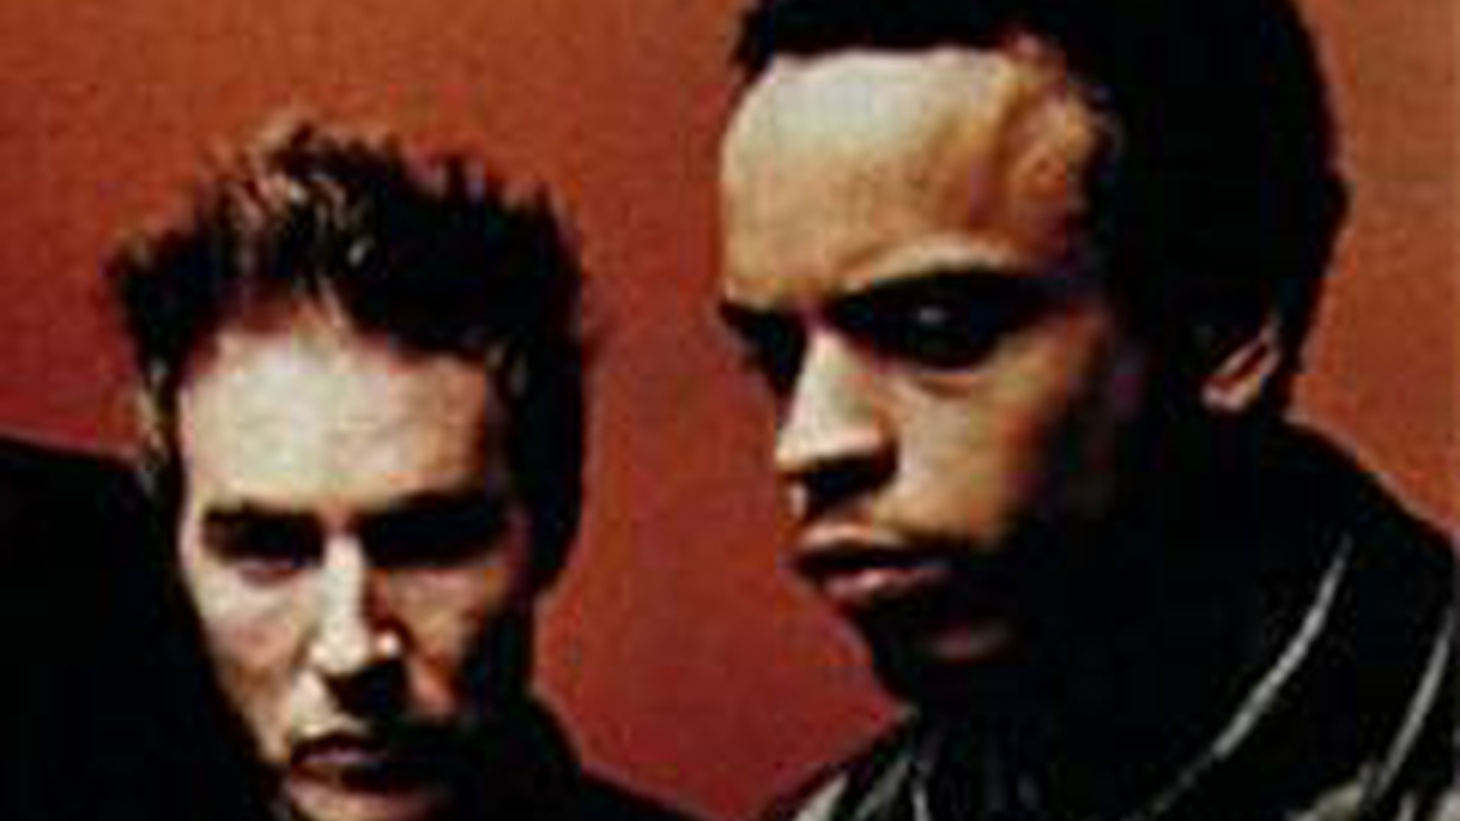 Members of Massive Attack, UK-based pioneers of trip hop groove rap style music, talk about their work and debut new tracks.